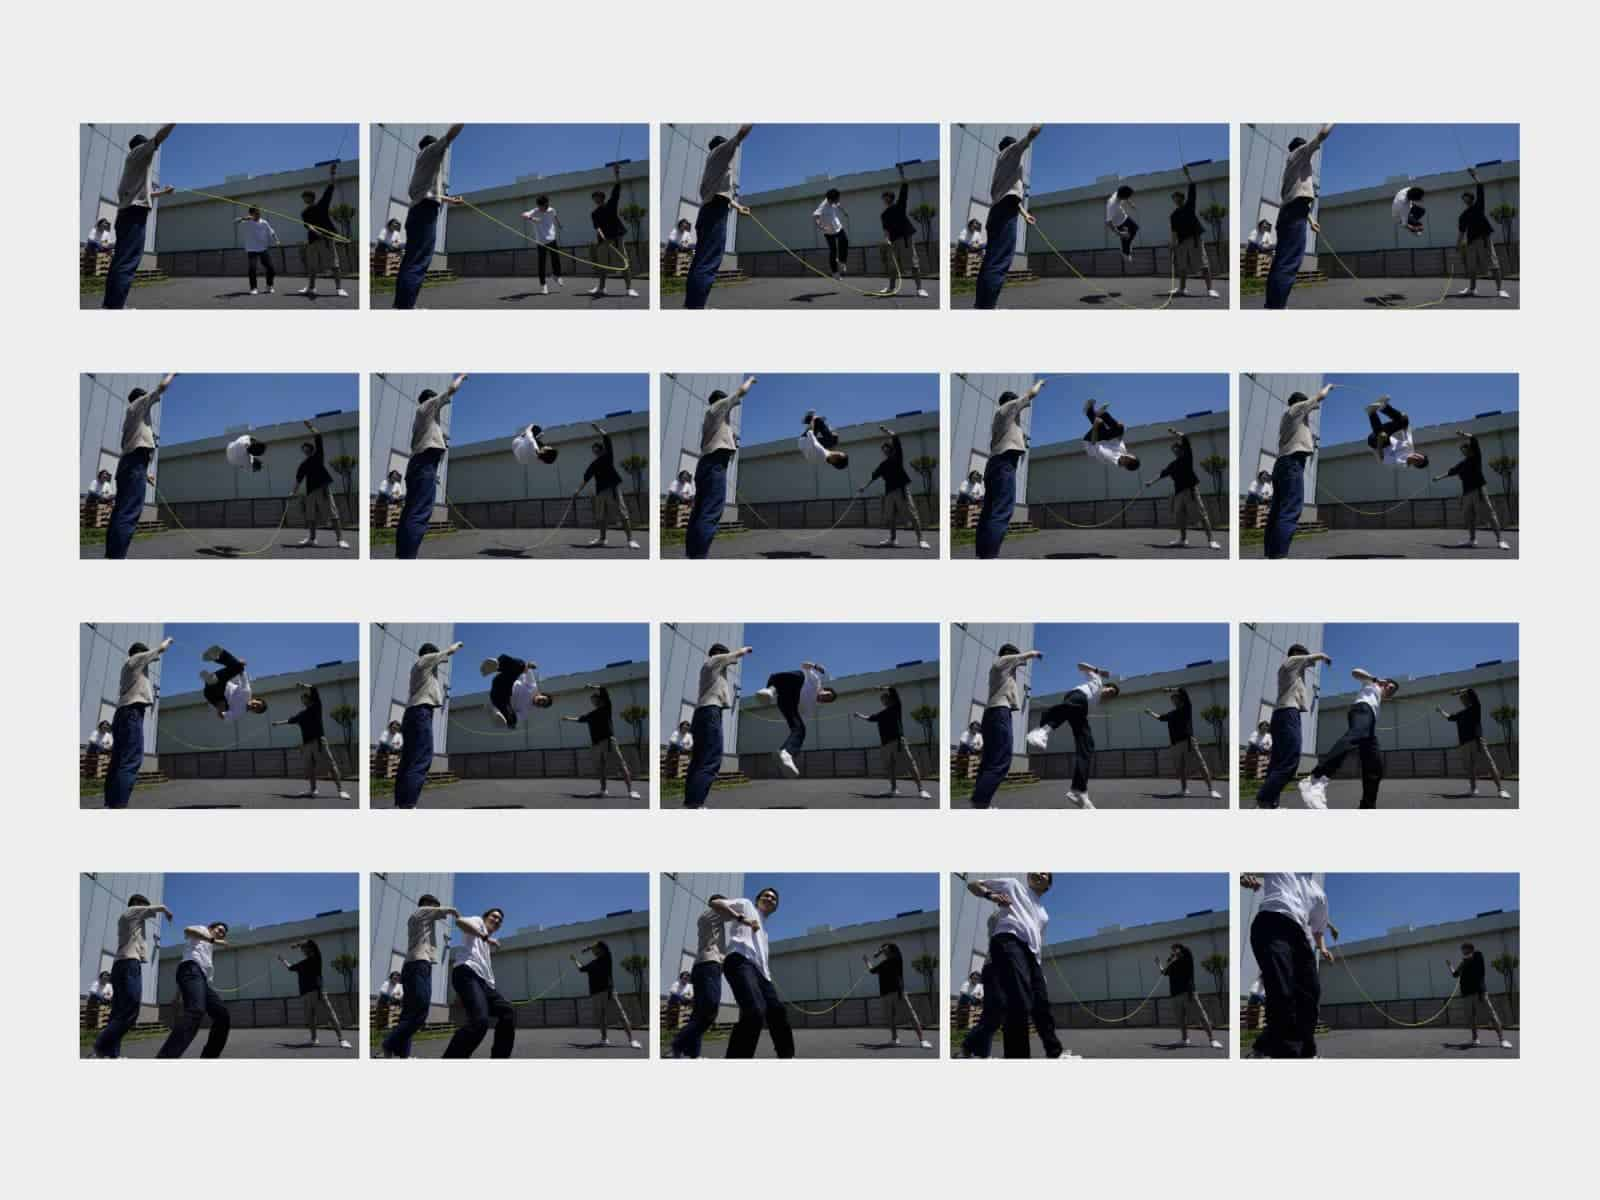 02 Xperia 5 II 20fps AF AE in Tile Illustrative purpose only Large 1